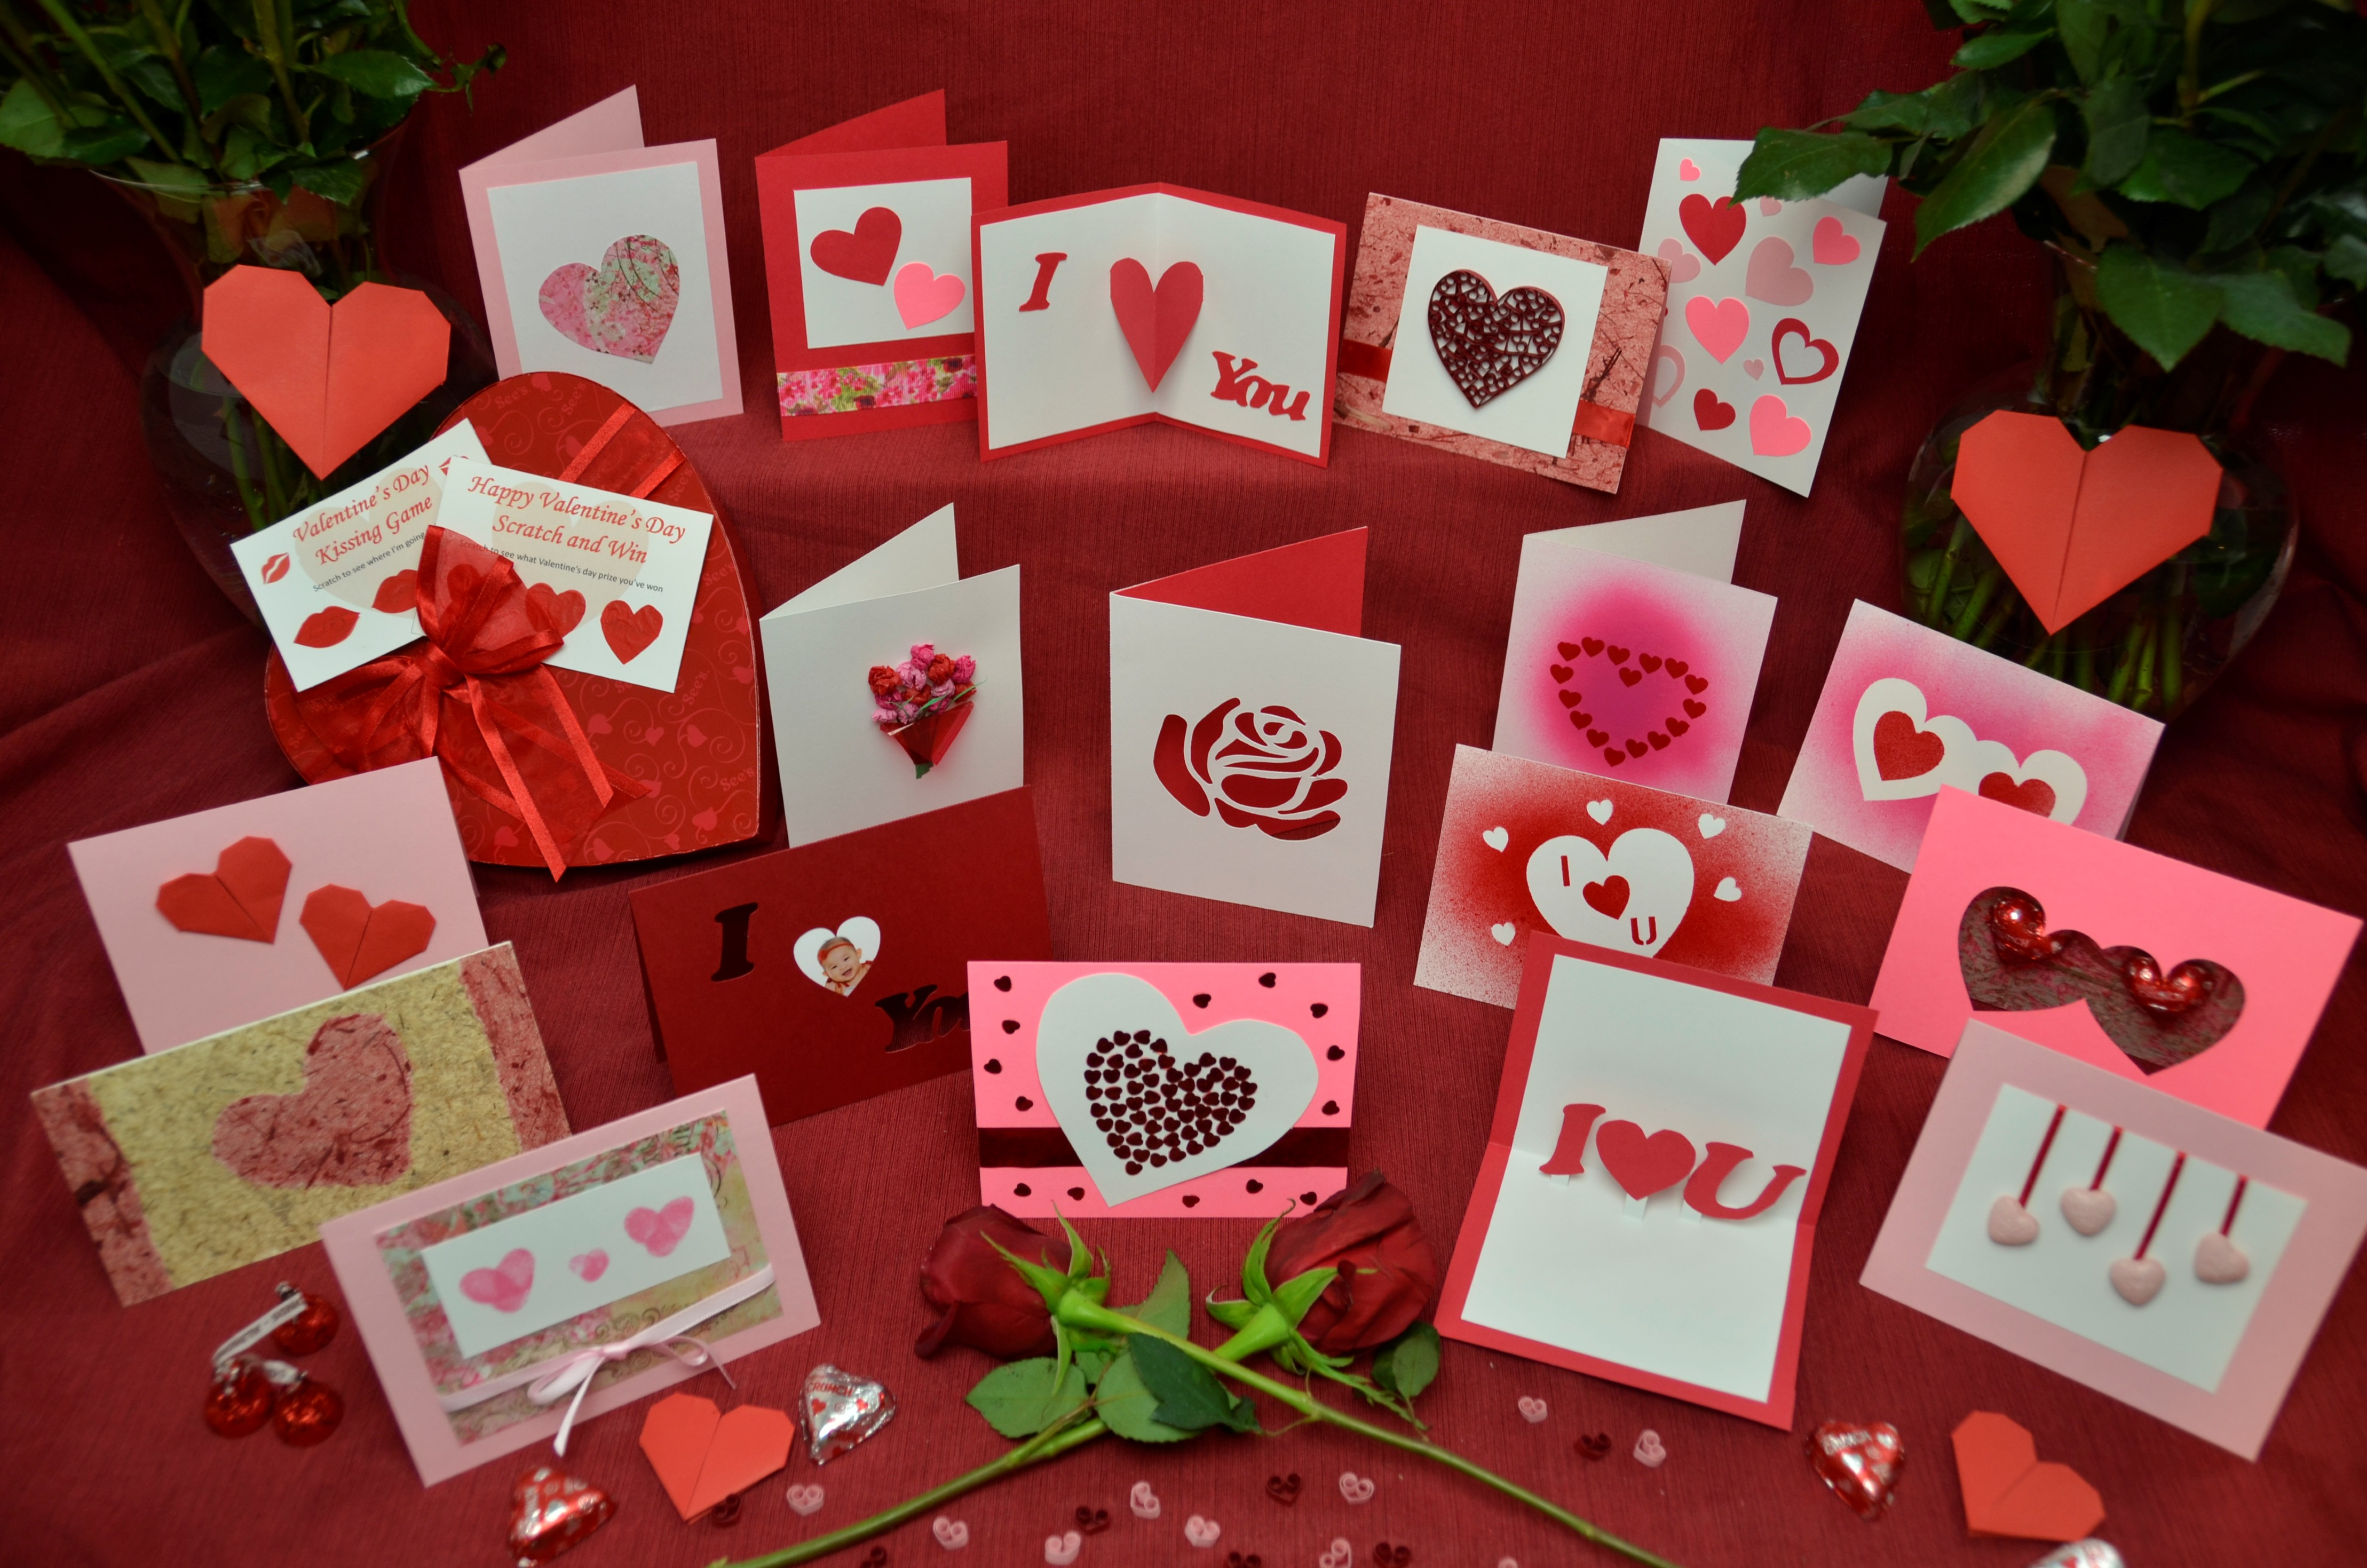 Storing 150 Million Valentines Day Cards